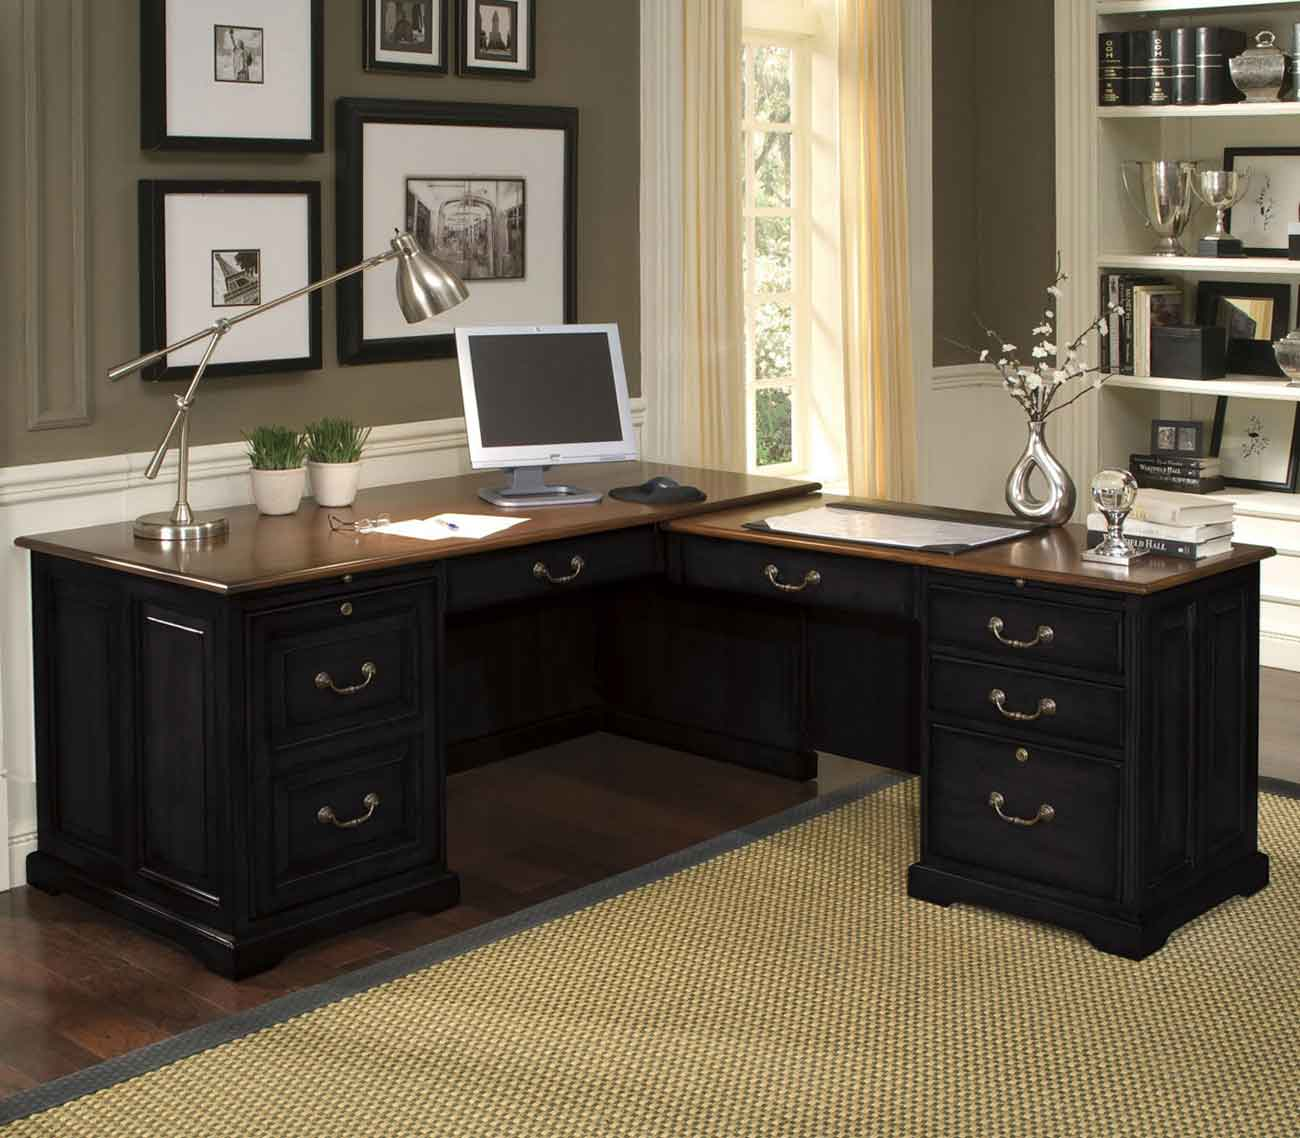 Oak office desk benefits for home office - Black L Shape Desk For Home Office Black L Shape Desk For Home Office